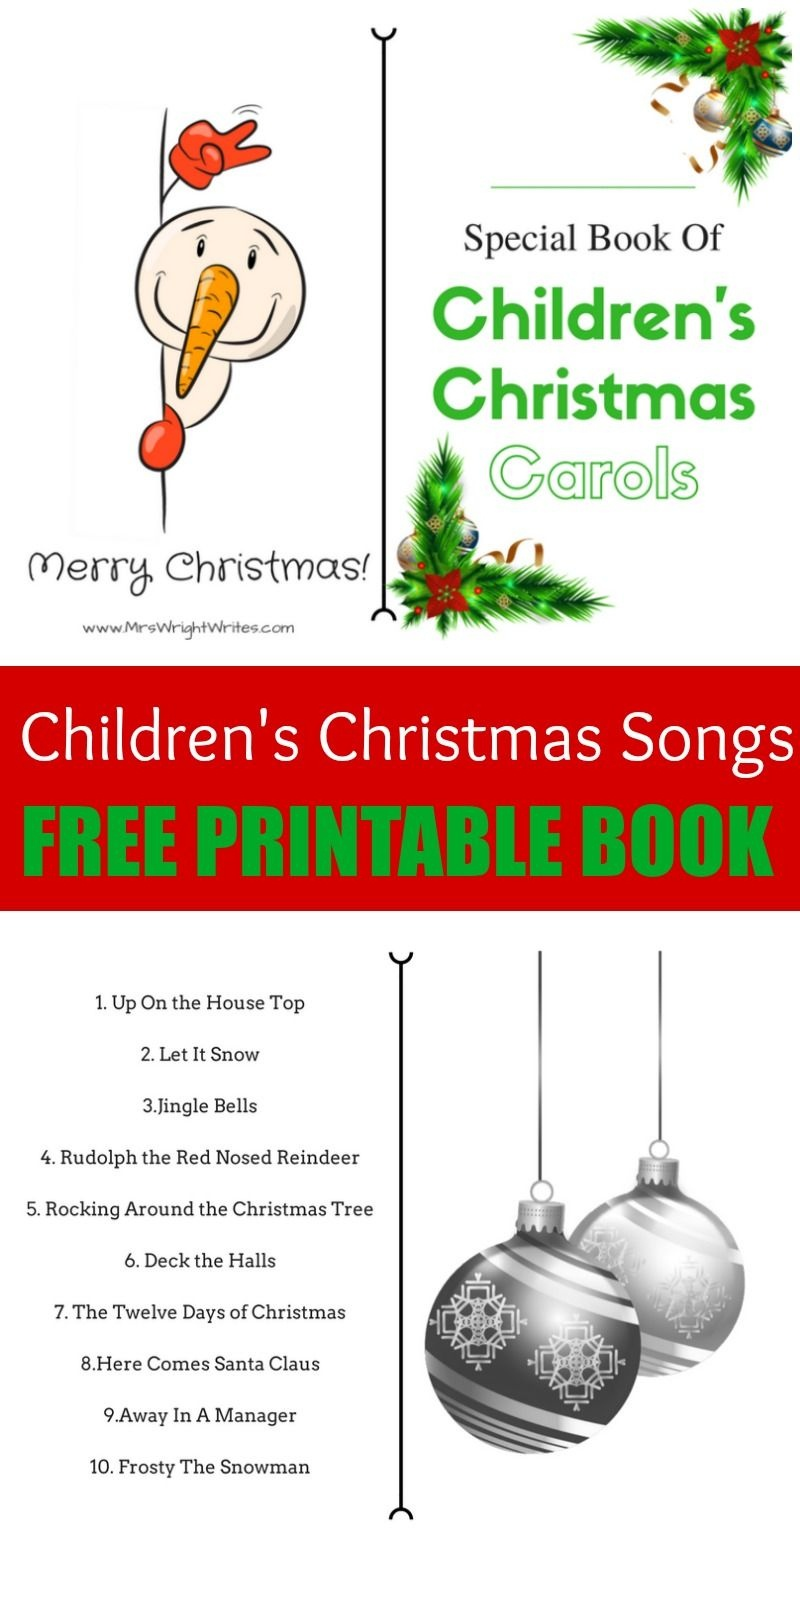 The Best Children's Christmas Songs - Free Printable Book - Free Printable Christmas Carols Booklet